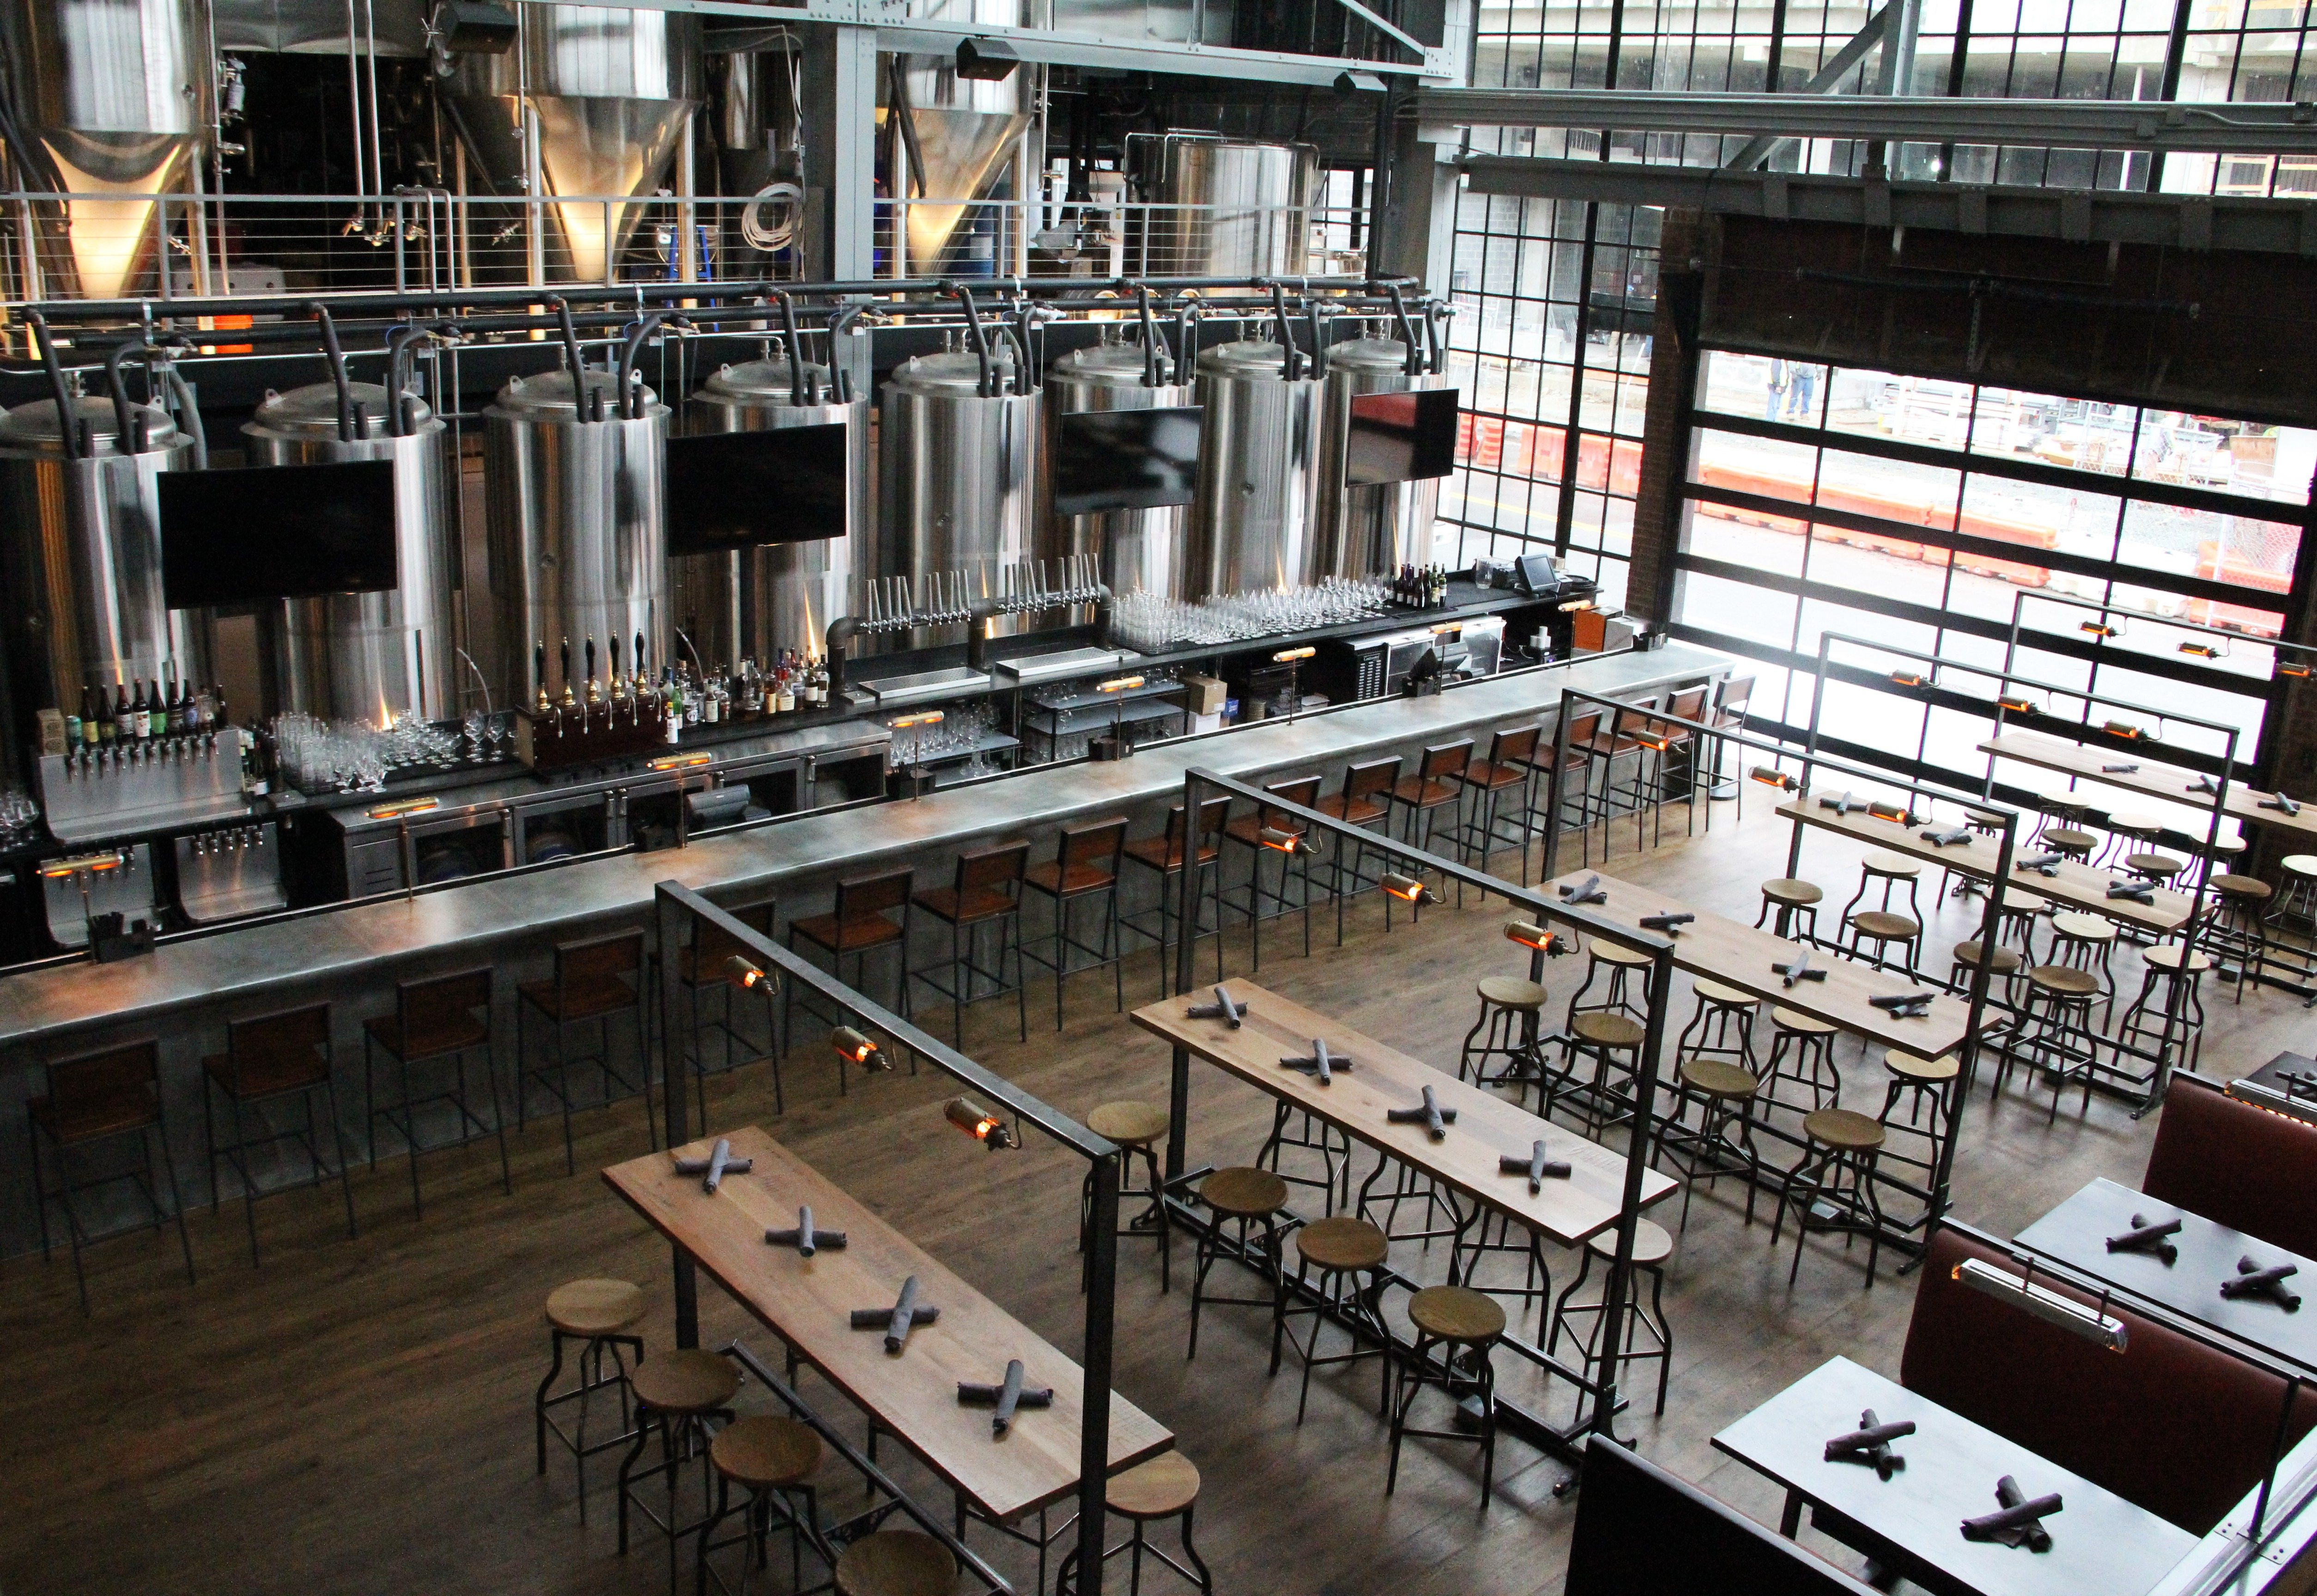 """As the craft-beer industry continues to explode, brewers are realizing the benefits of stepping up their design game to attract new crowds of """"beer tourists"""" to their shiny facilities. …"""